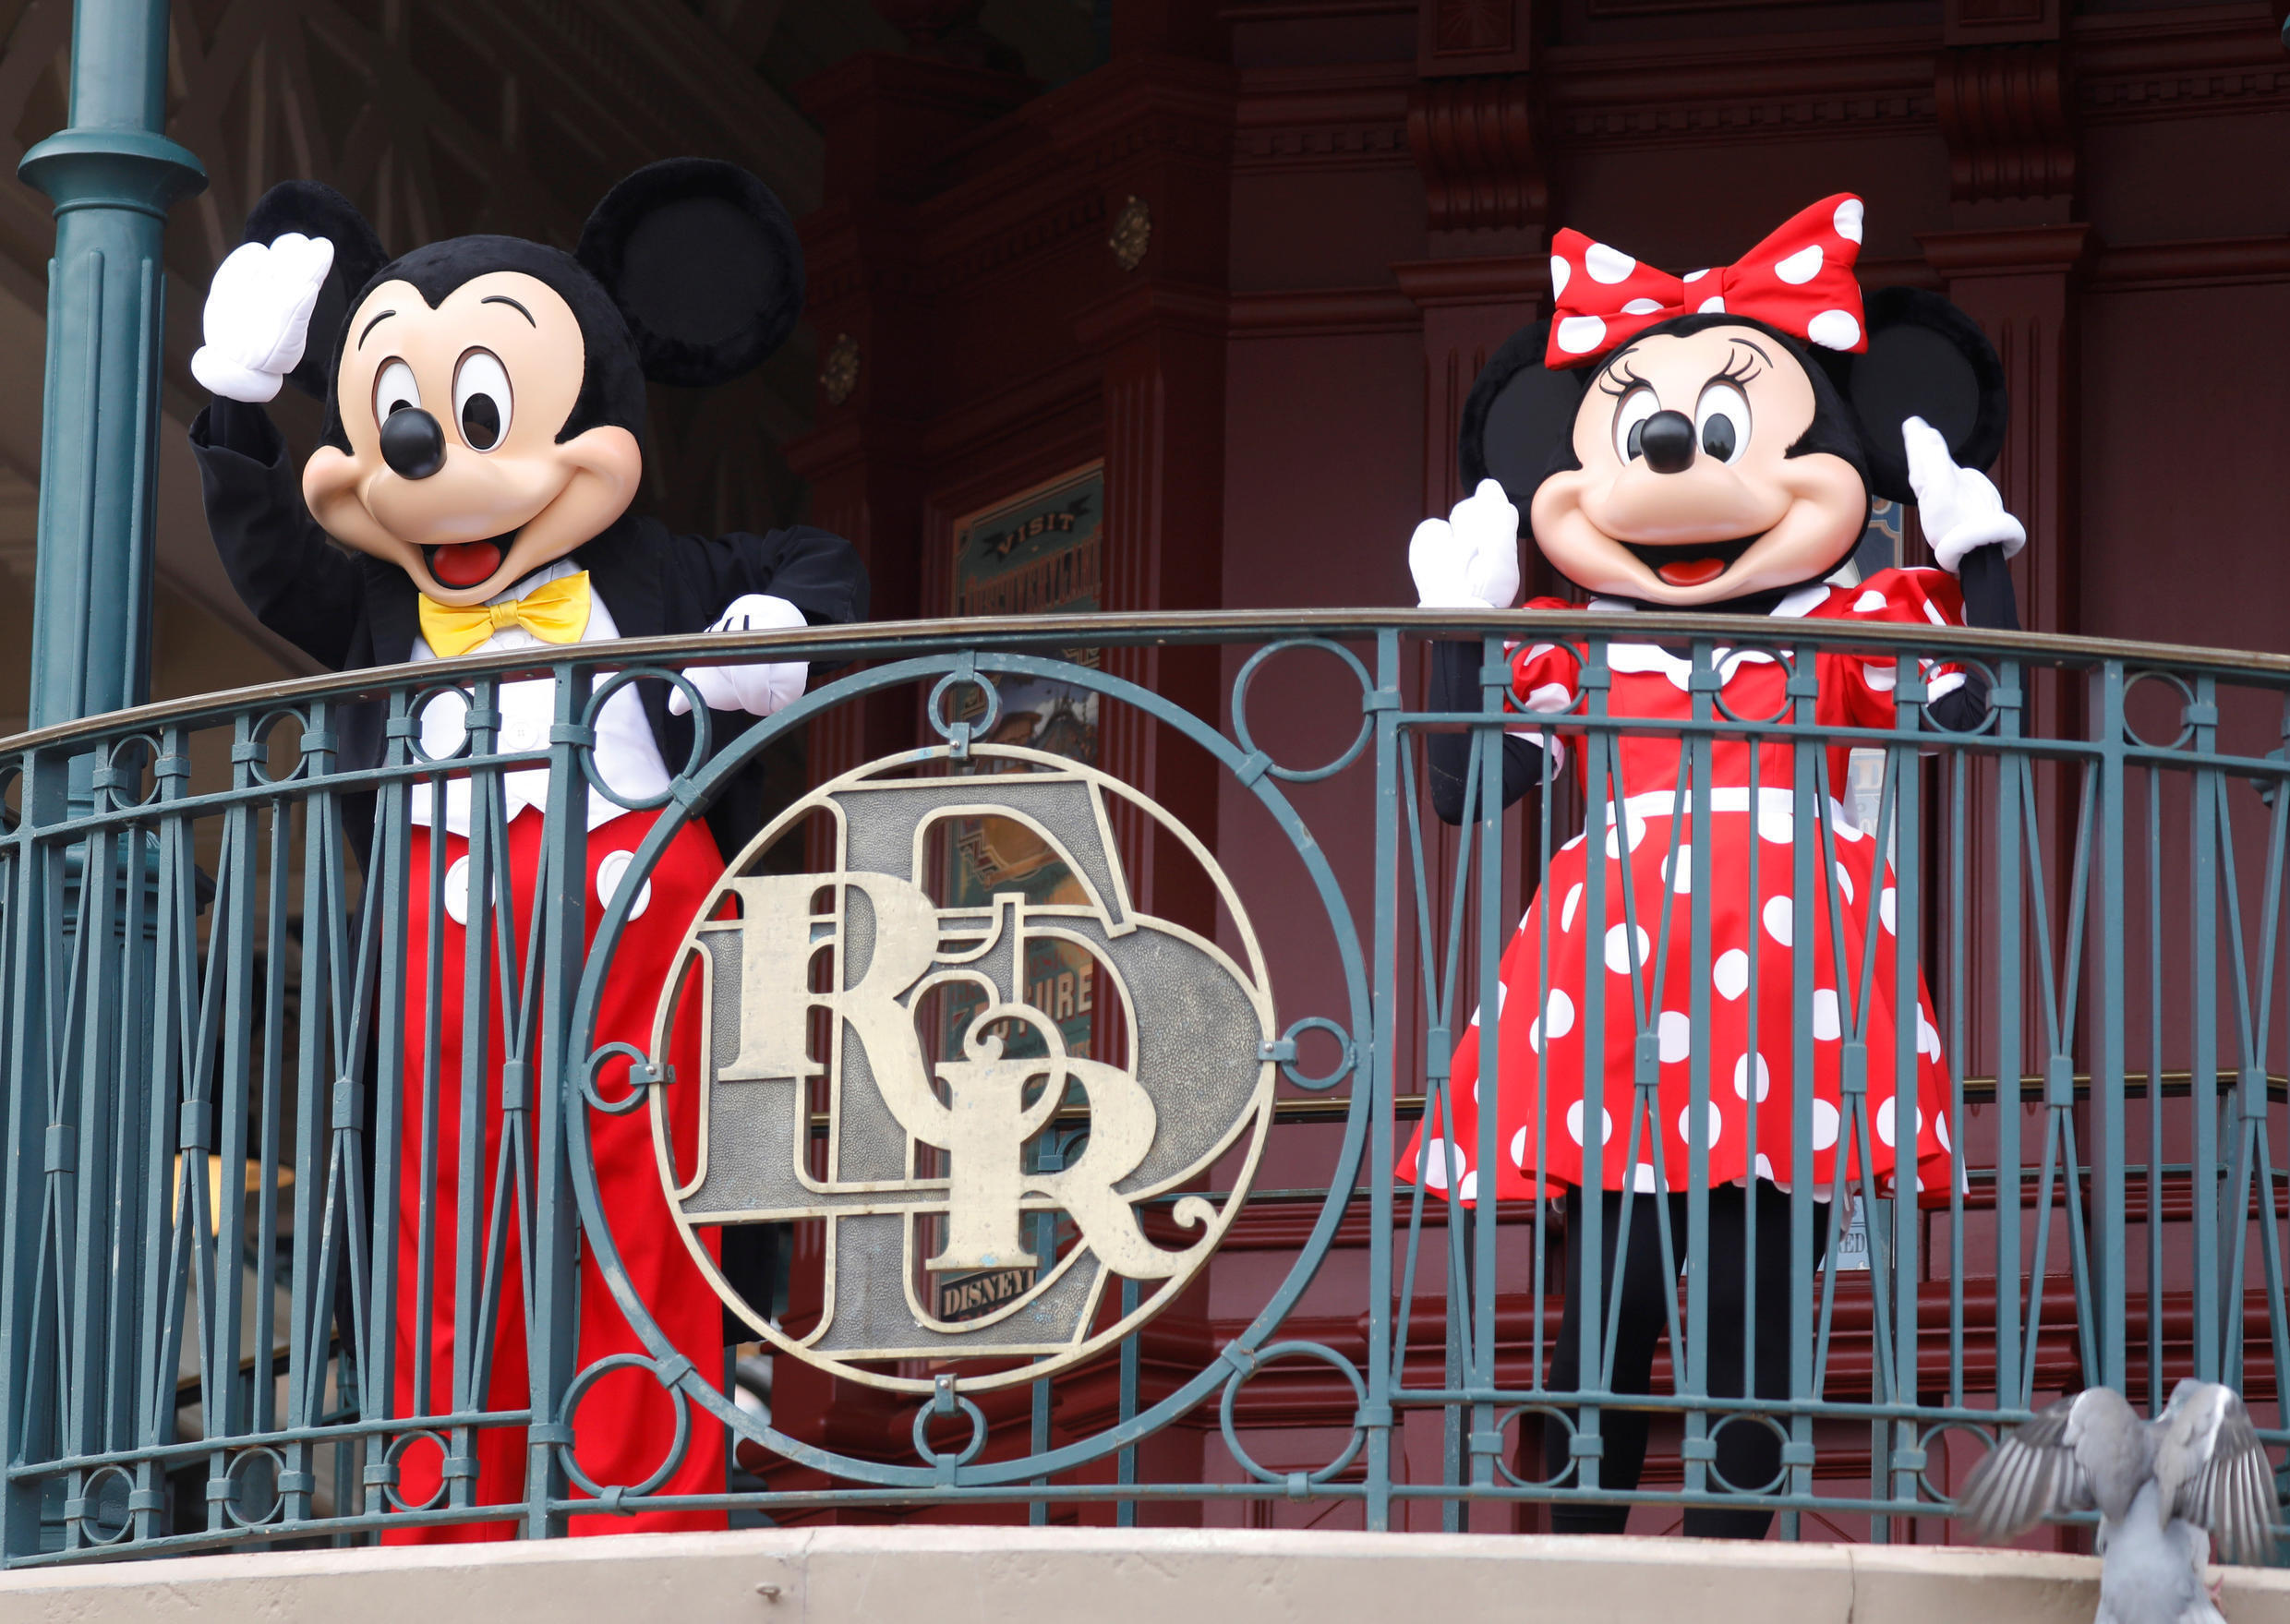 Disney characters Mickey and Minnie Mouse welcome visitors to Disneyland Paris as the theme park reopens its doors after a four-month shutdown.